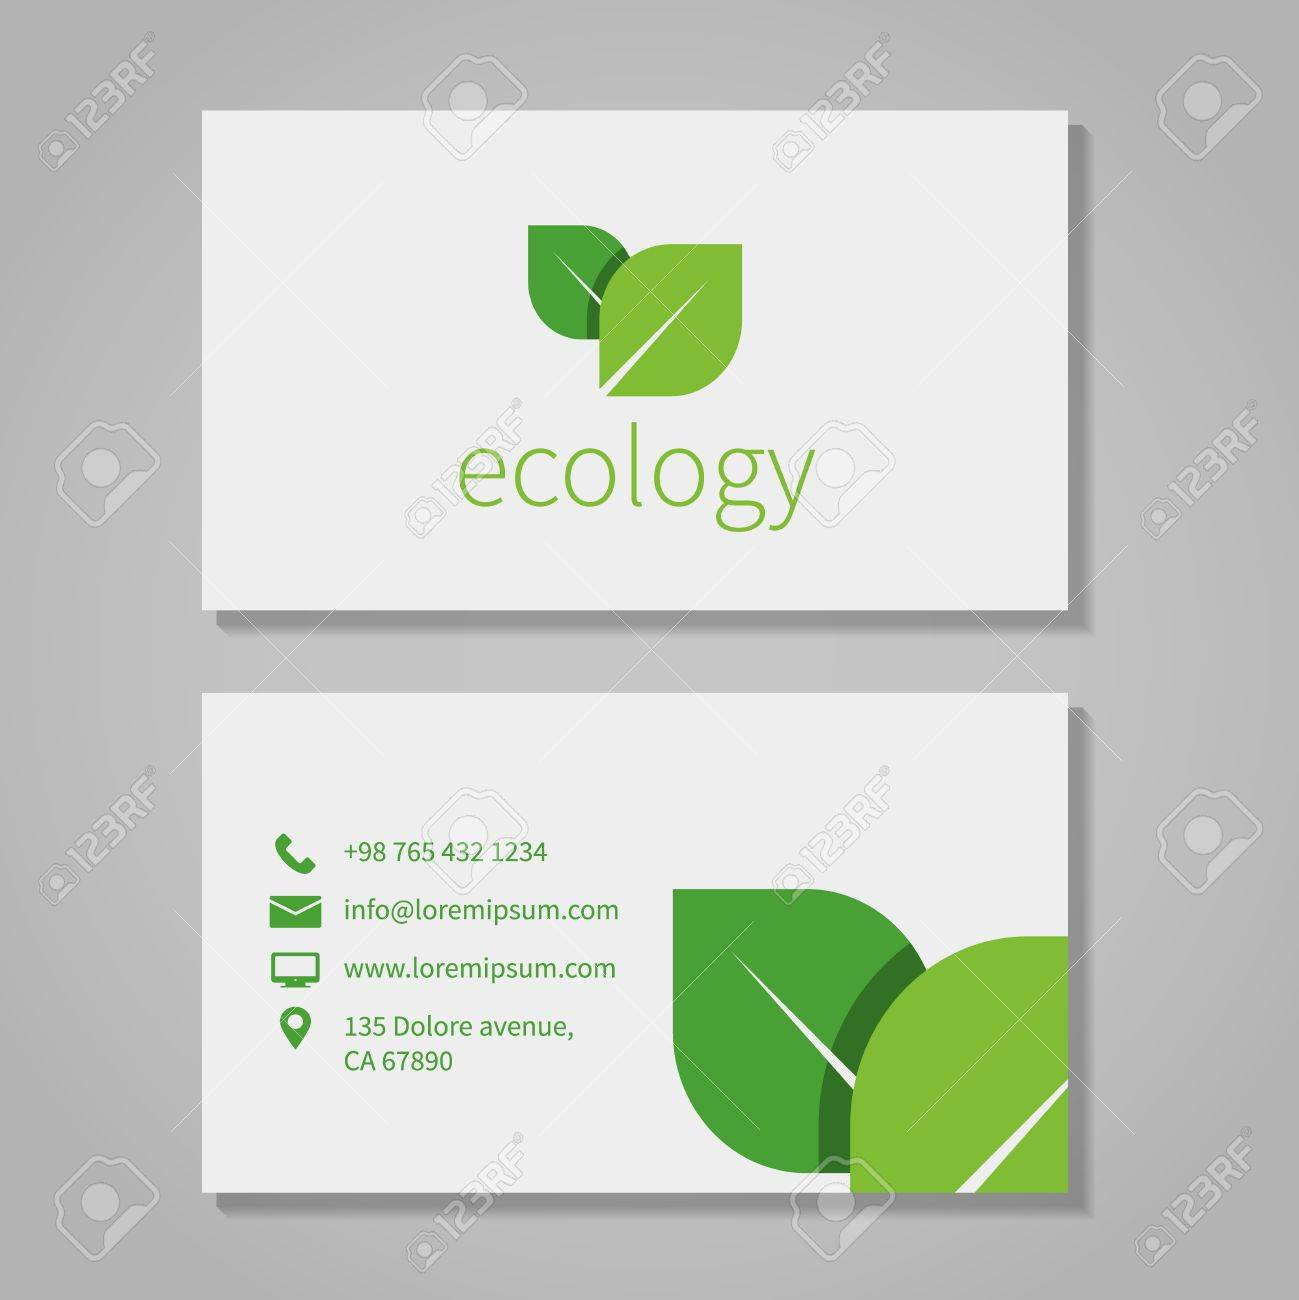 Ecological Or Eco Energy Company Business Card Template With